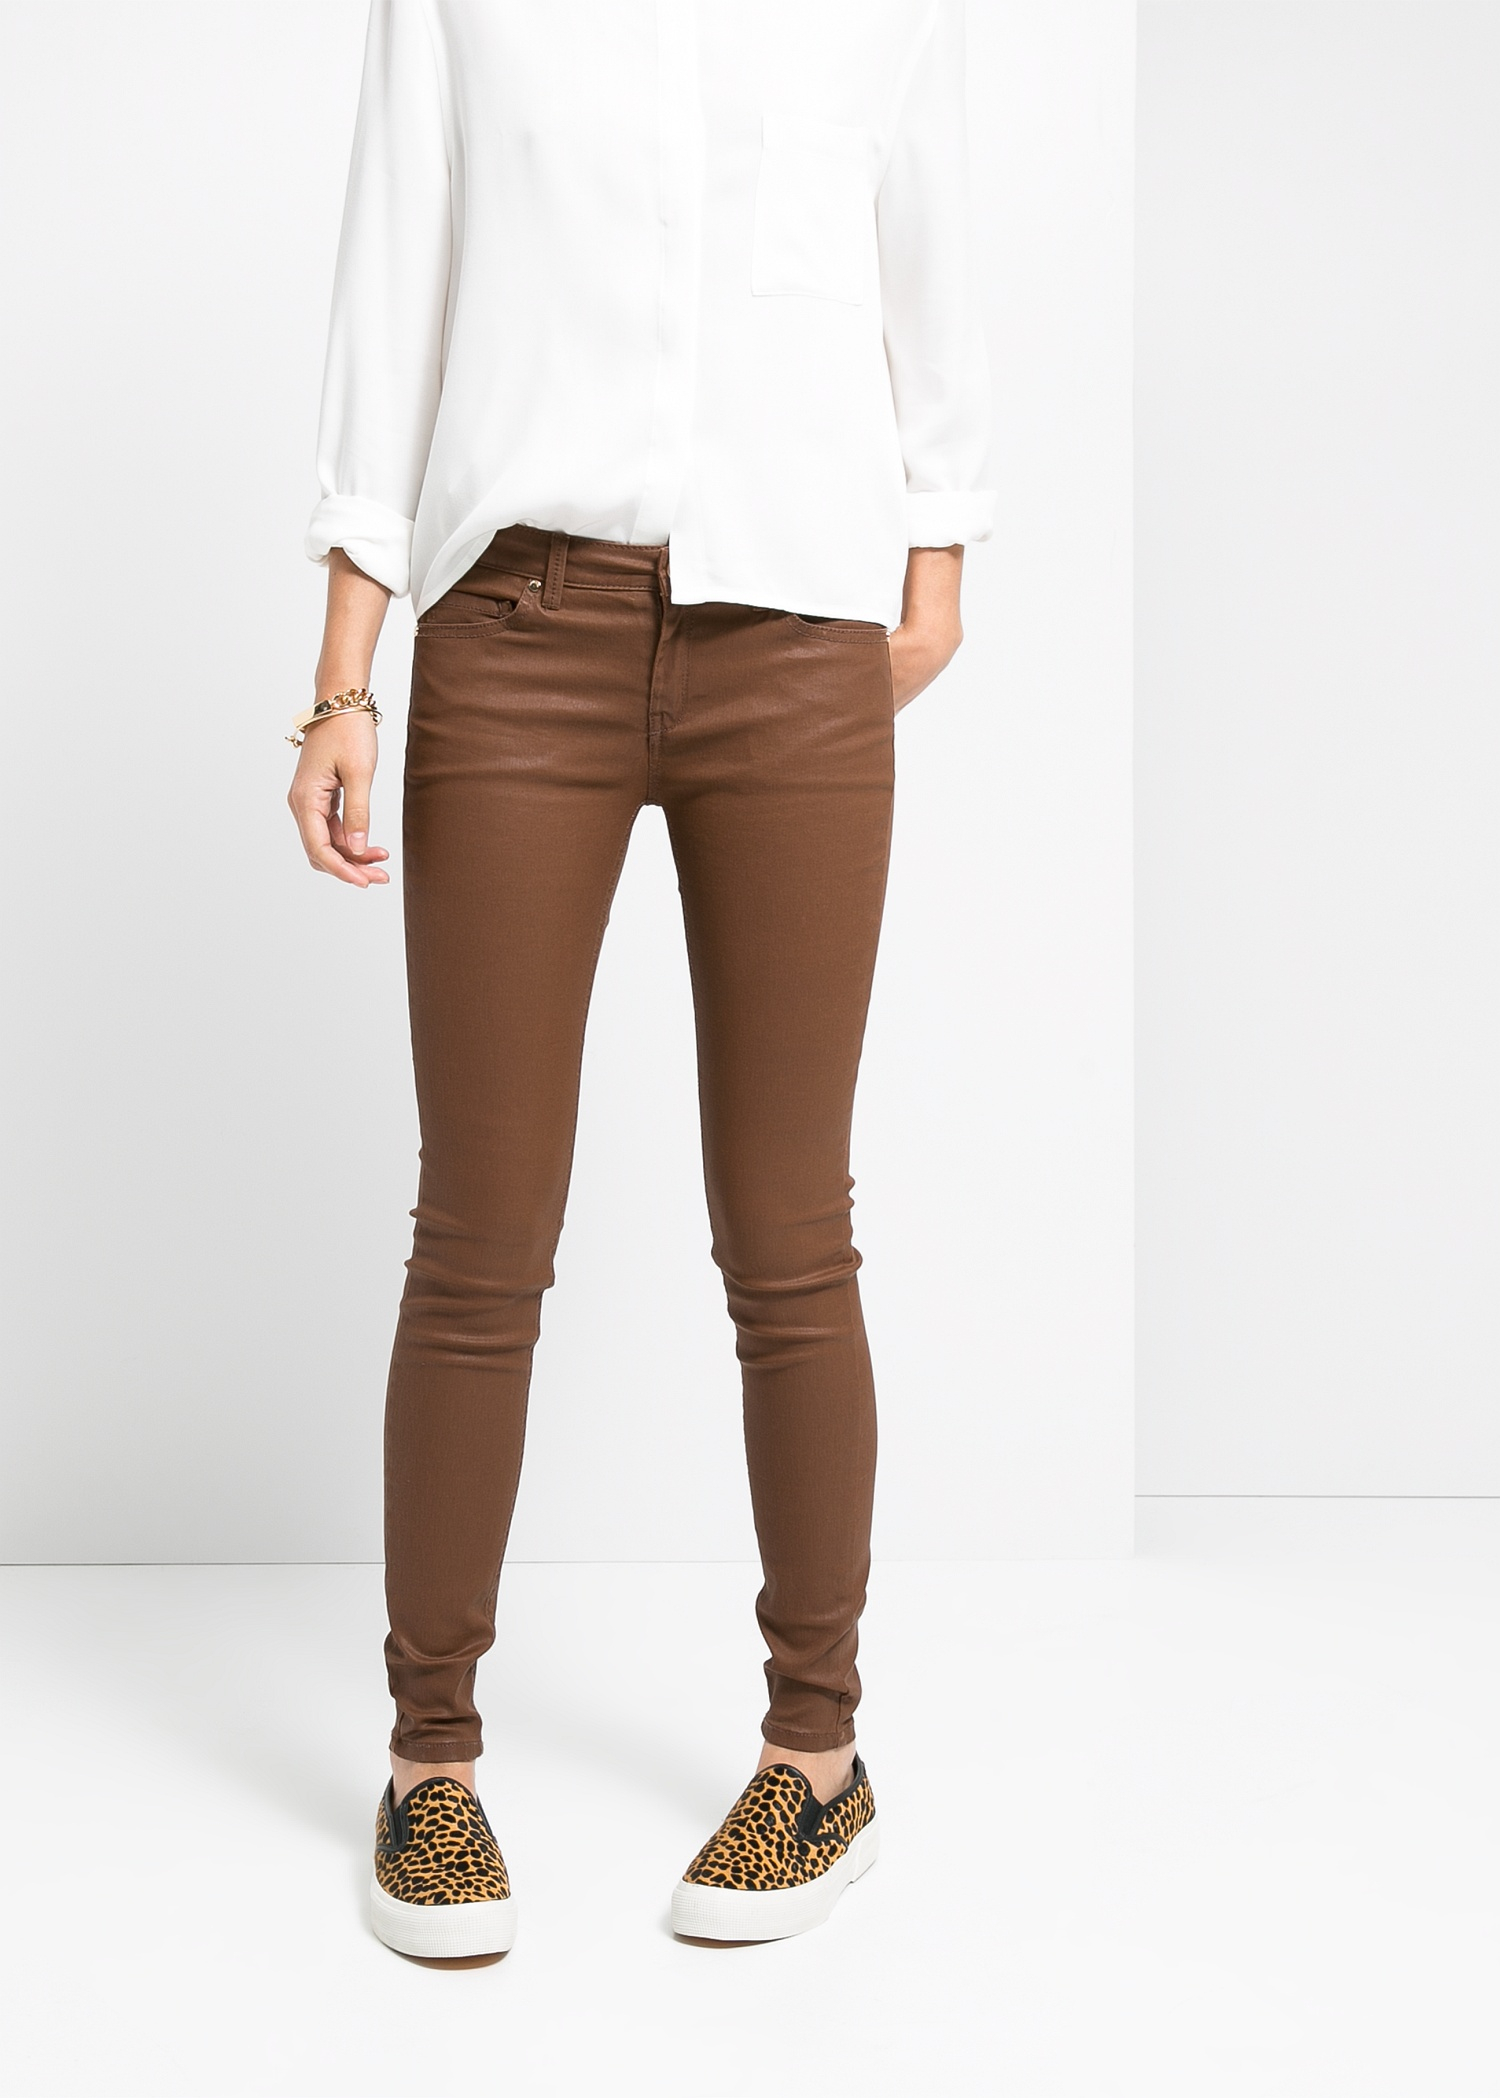 Mango Belle Skinny Jeans in Brown | Lyst